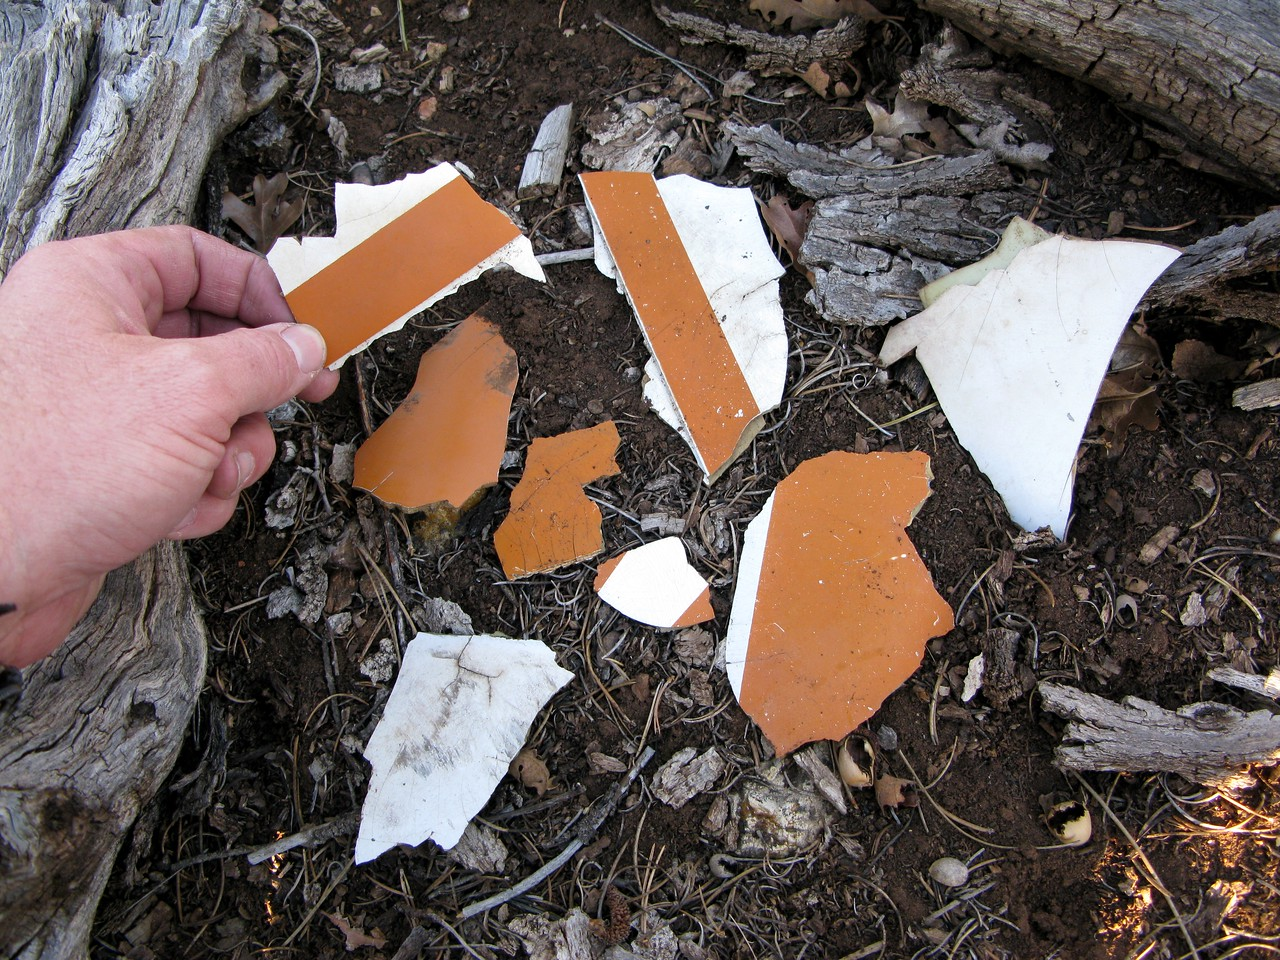 These small plastic fragments give me an idea of the paint color and scheme of the aircraft. They also look very similar to an un-identified pile of burned aircraft debris located about four miles away at Ten-X Meadow. <br /> <br /> I decided to remove a few of these pieces from the crash site to see if the paint matches the fragments in the Ten-X Meadow debris pile.